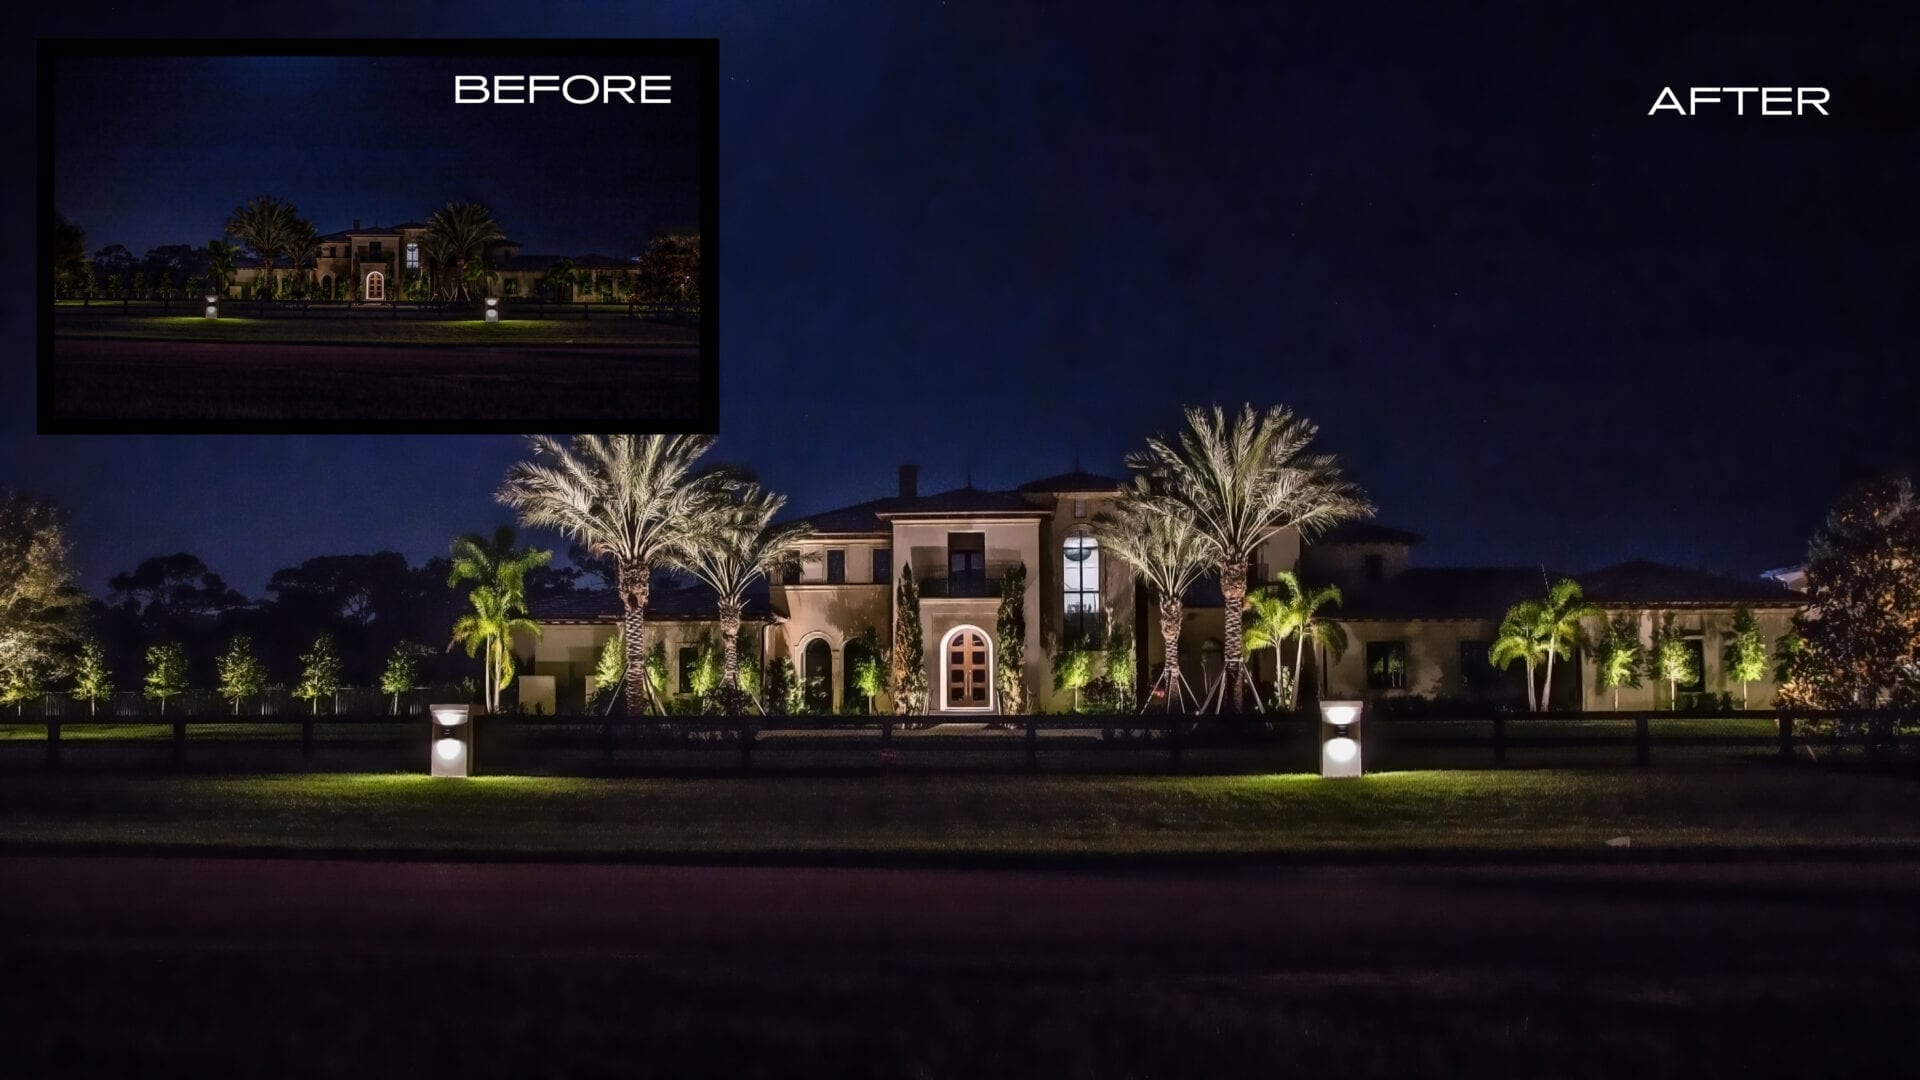 Illumination FL - Landscape Lighting -Before and After